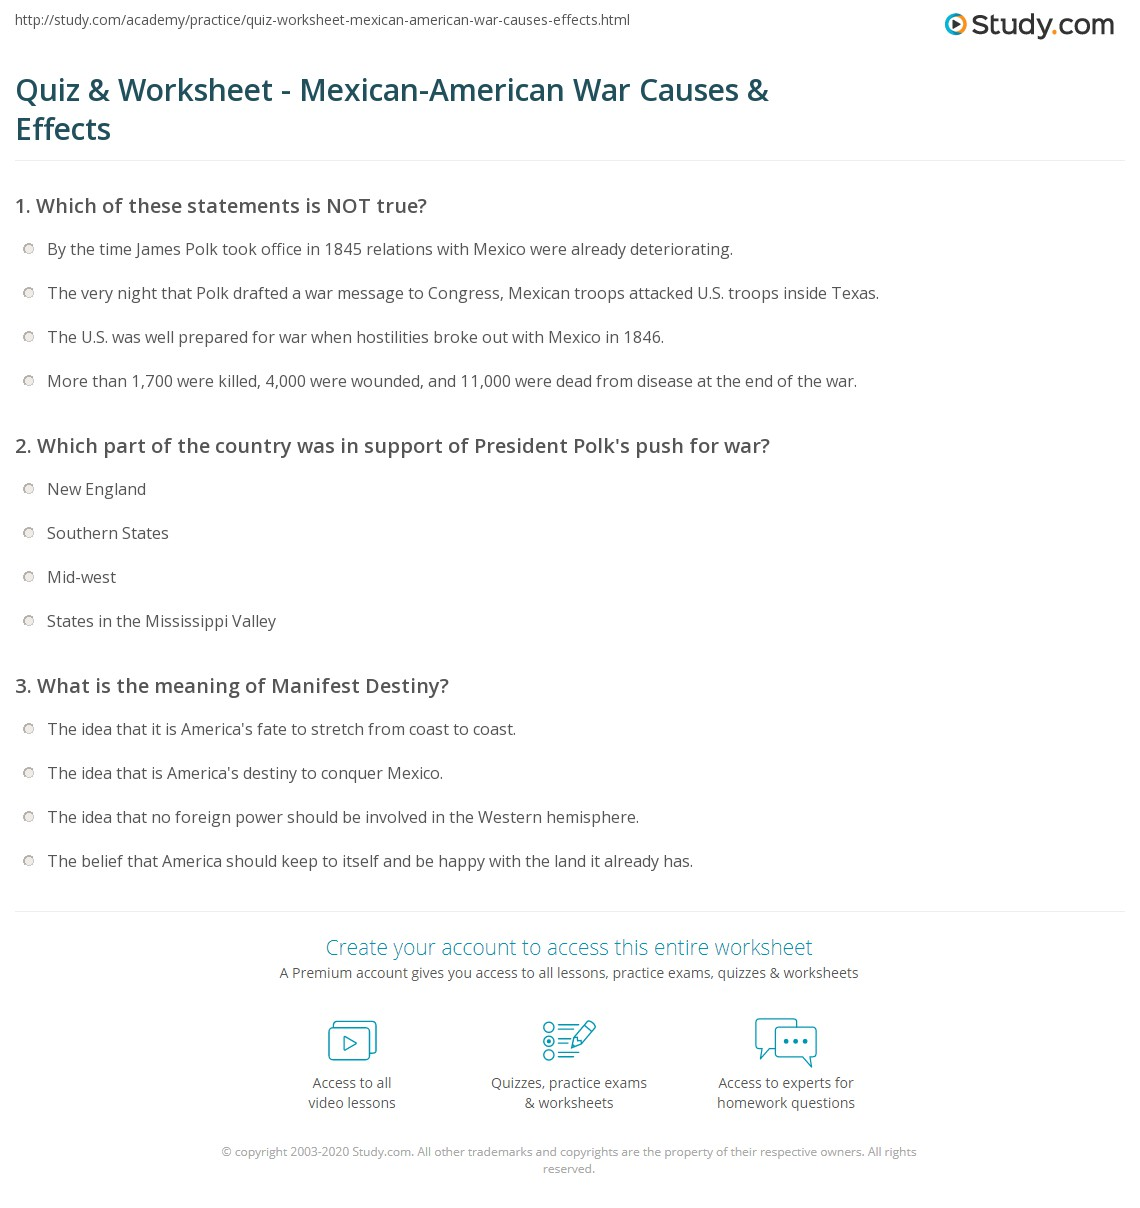 war essay essay about mexican war essay on divorce cause and  essay about mexican war essay mexican drug war images drug war cocaine murder smuggling gangs cartels essay on divorce cause and effect